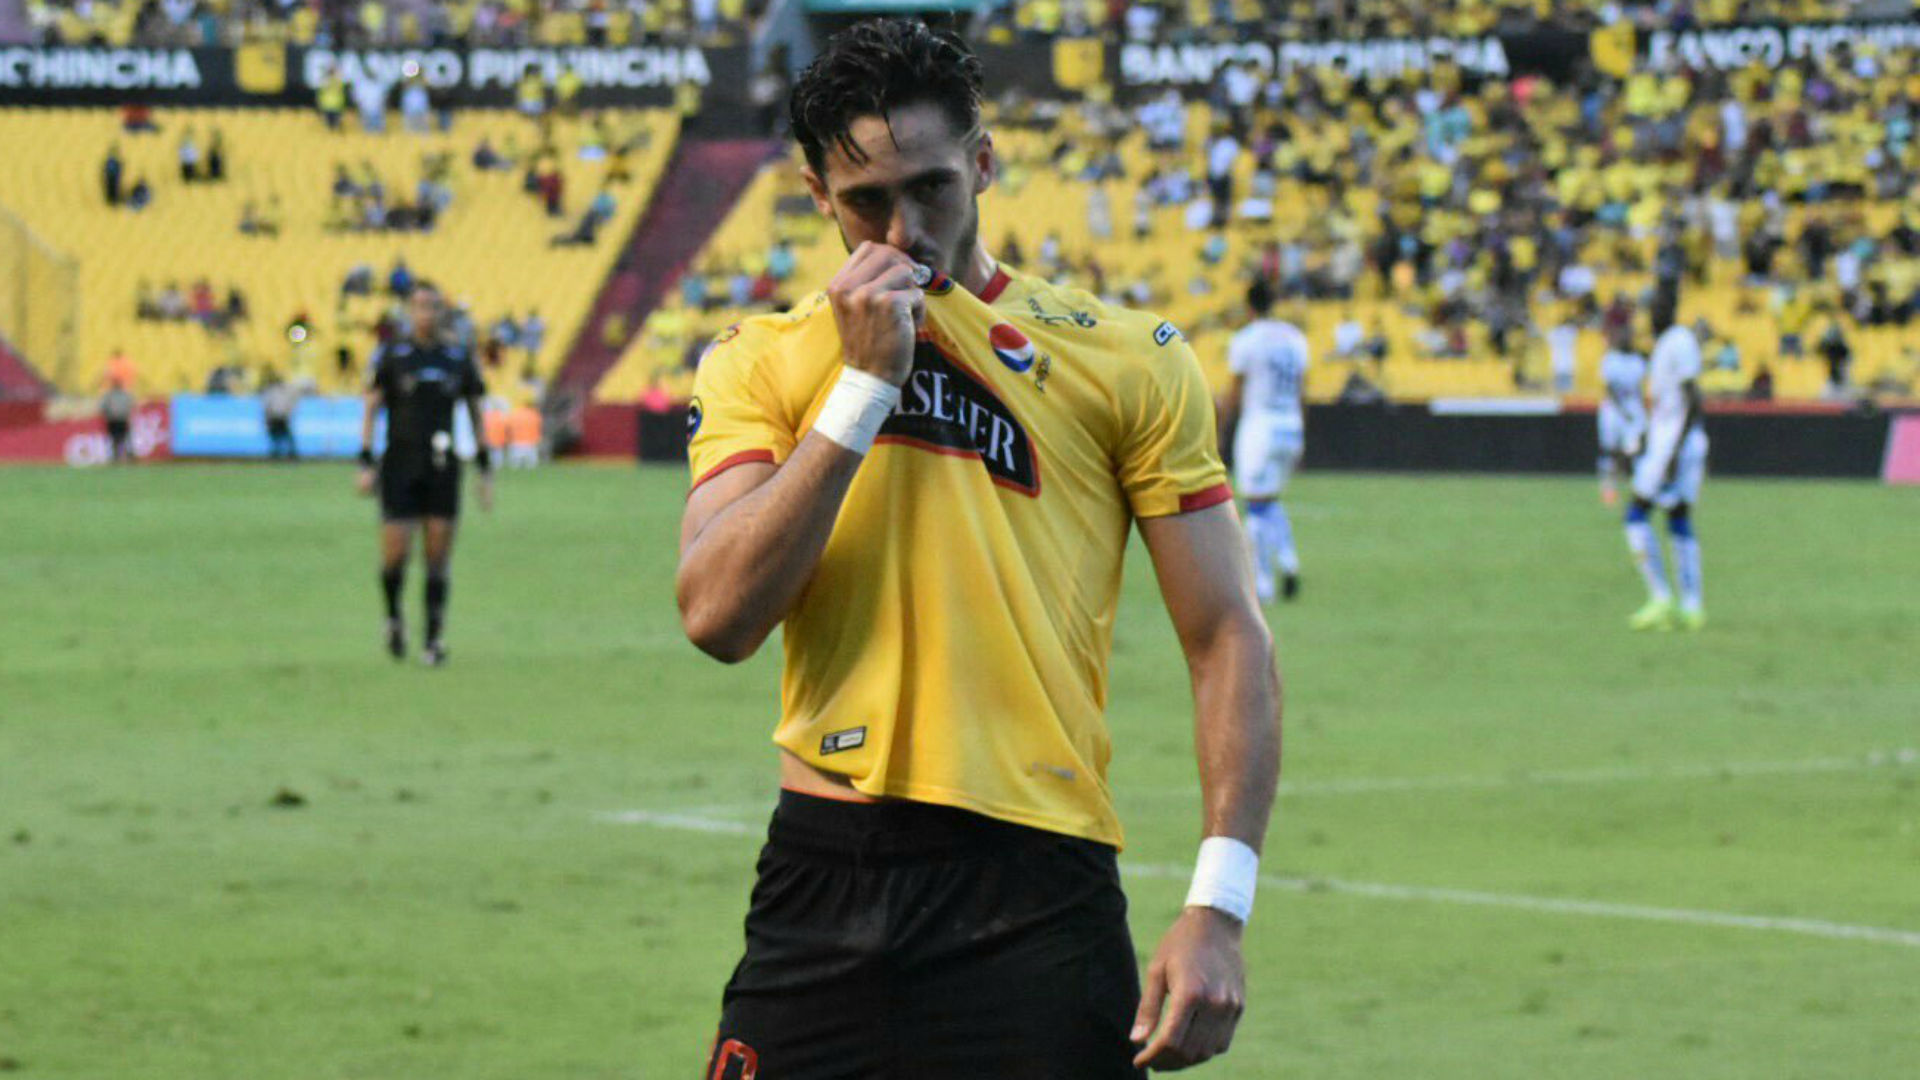 Wolves snap up Ecuadorian talent Campana as Mendes link pays off again